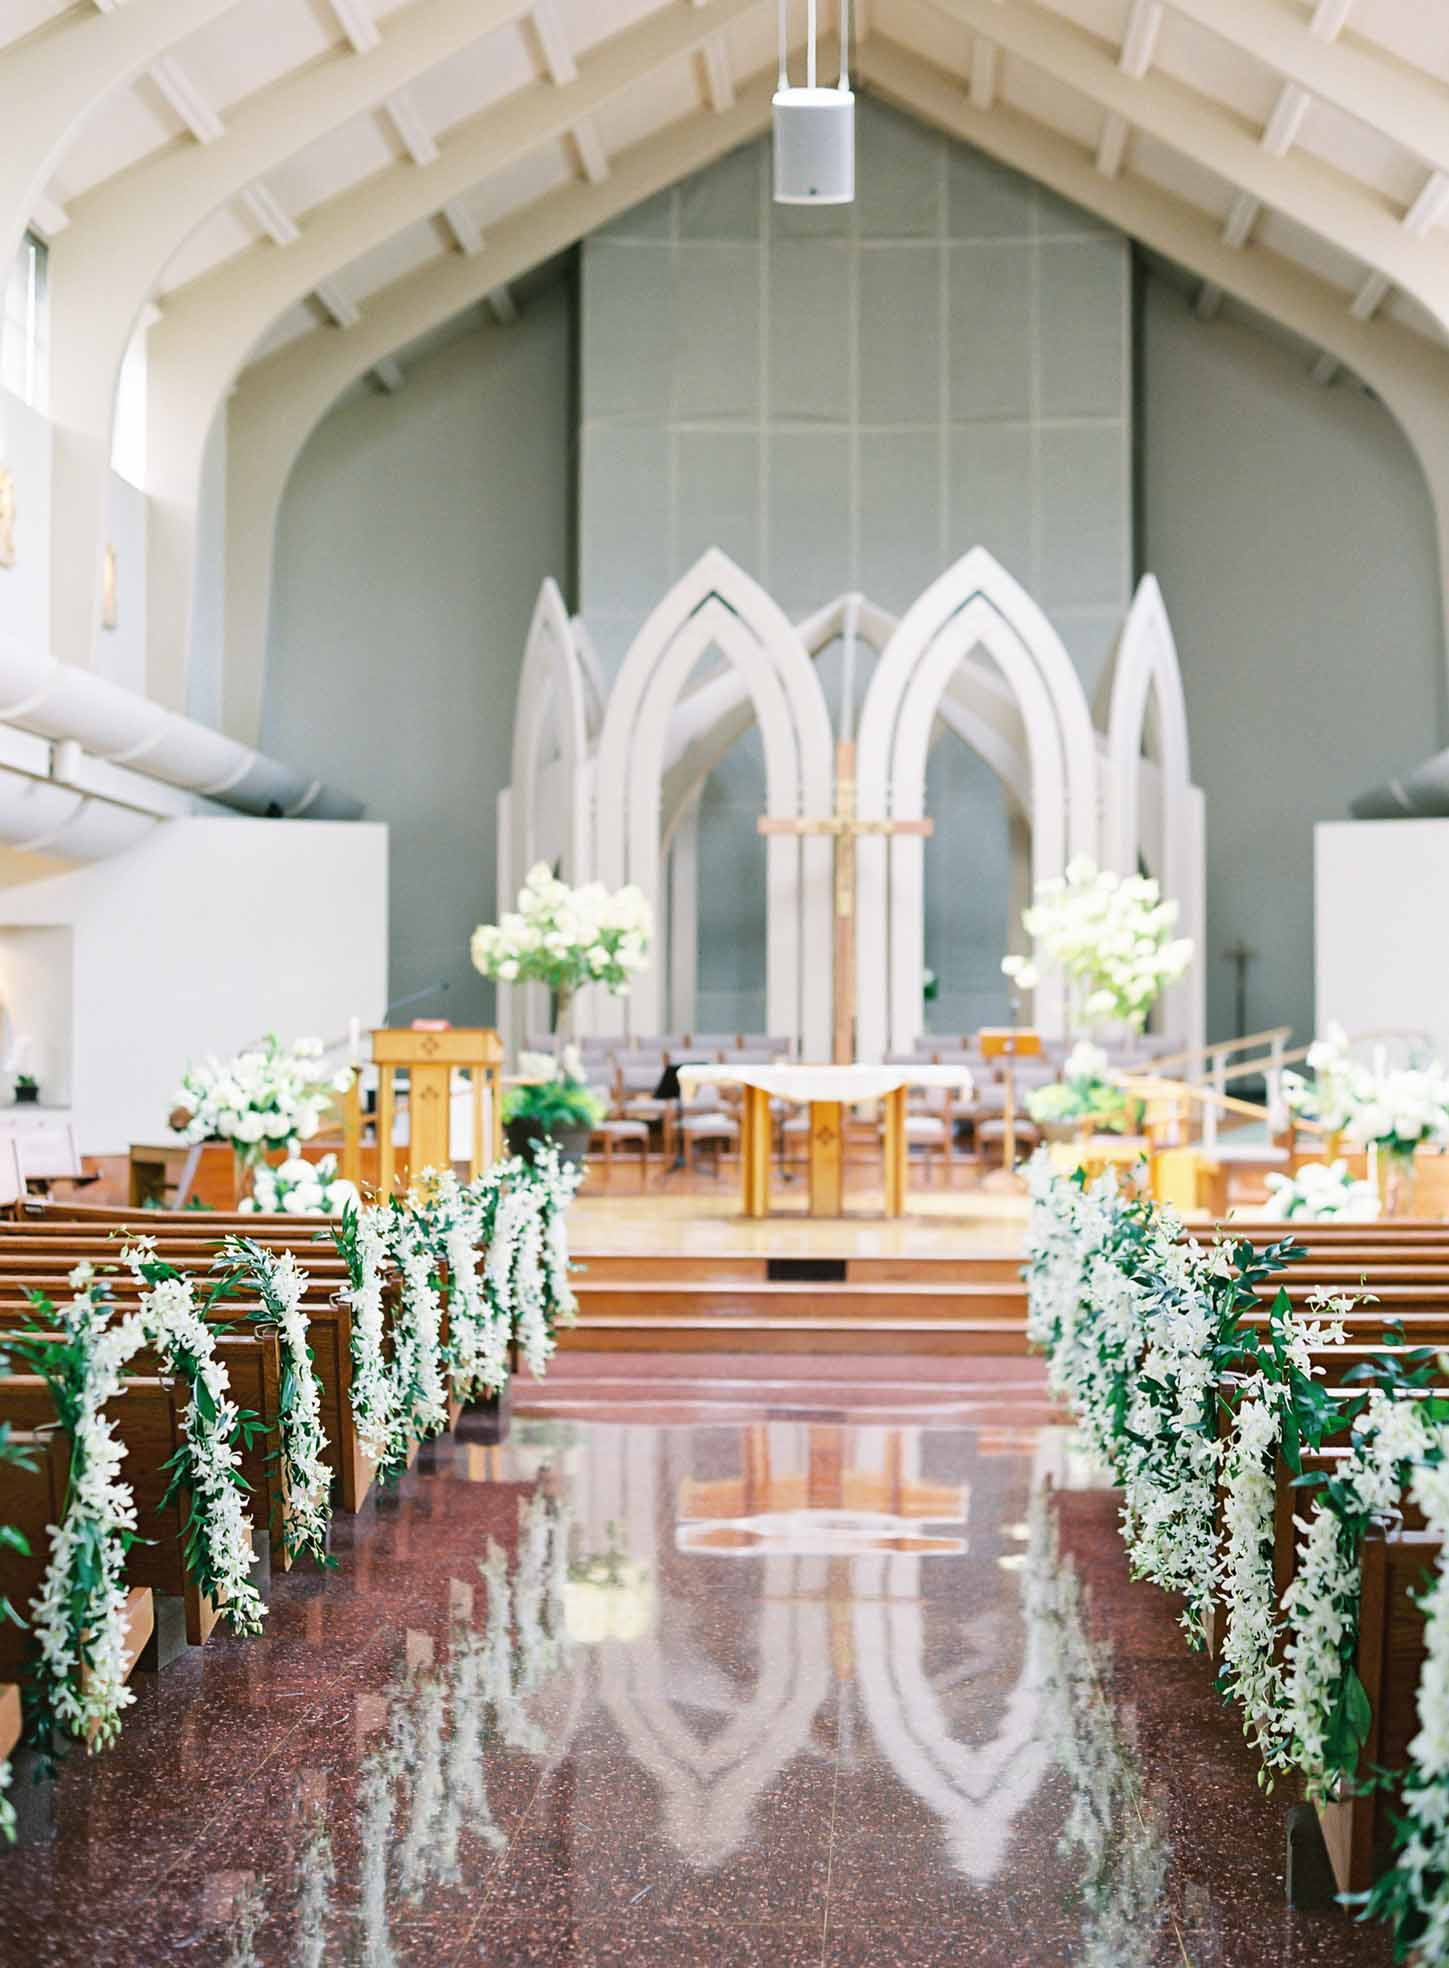 Wedding church aisle decorated with greenery and white orchids - Flora Nova Design